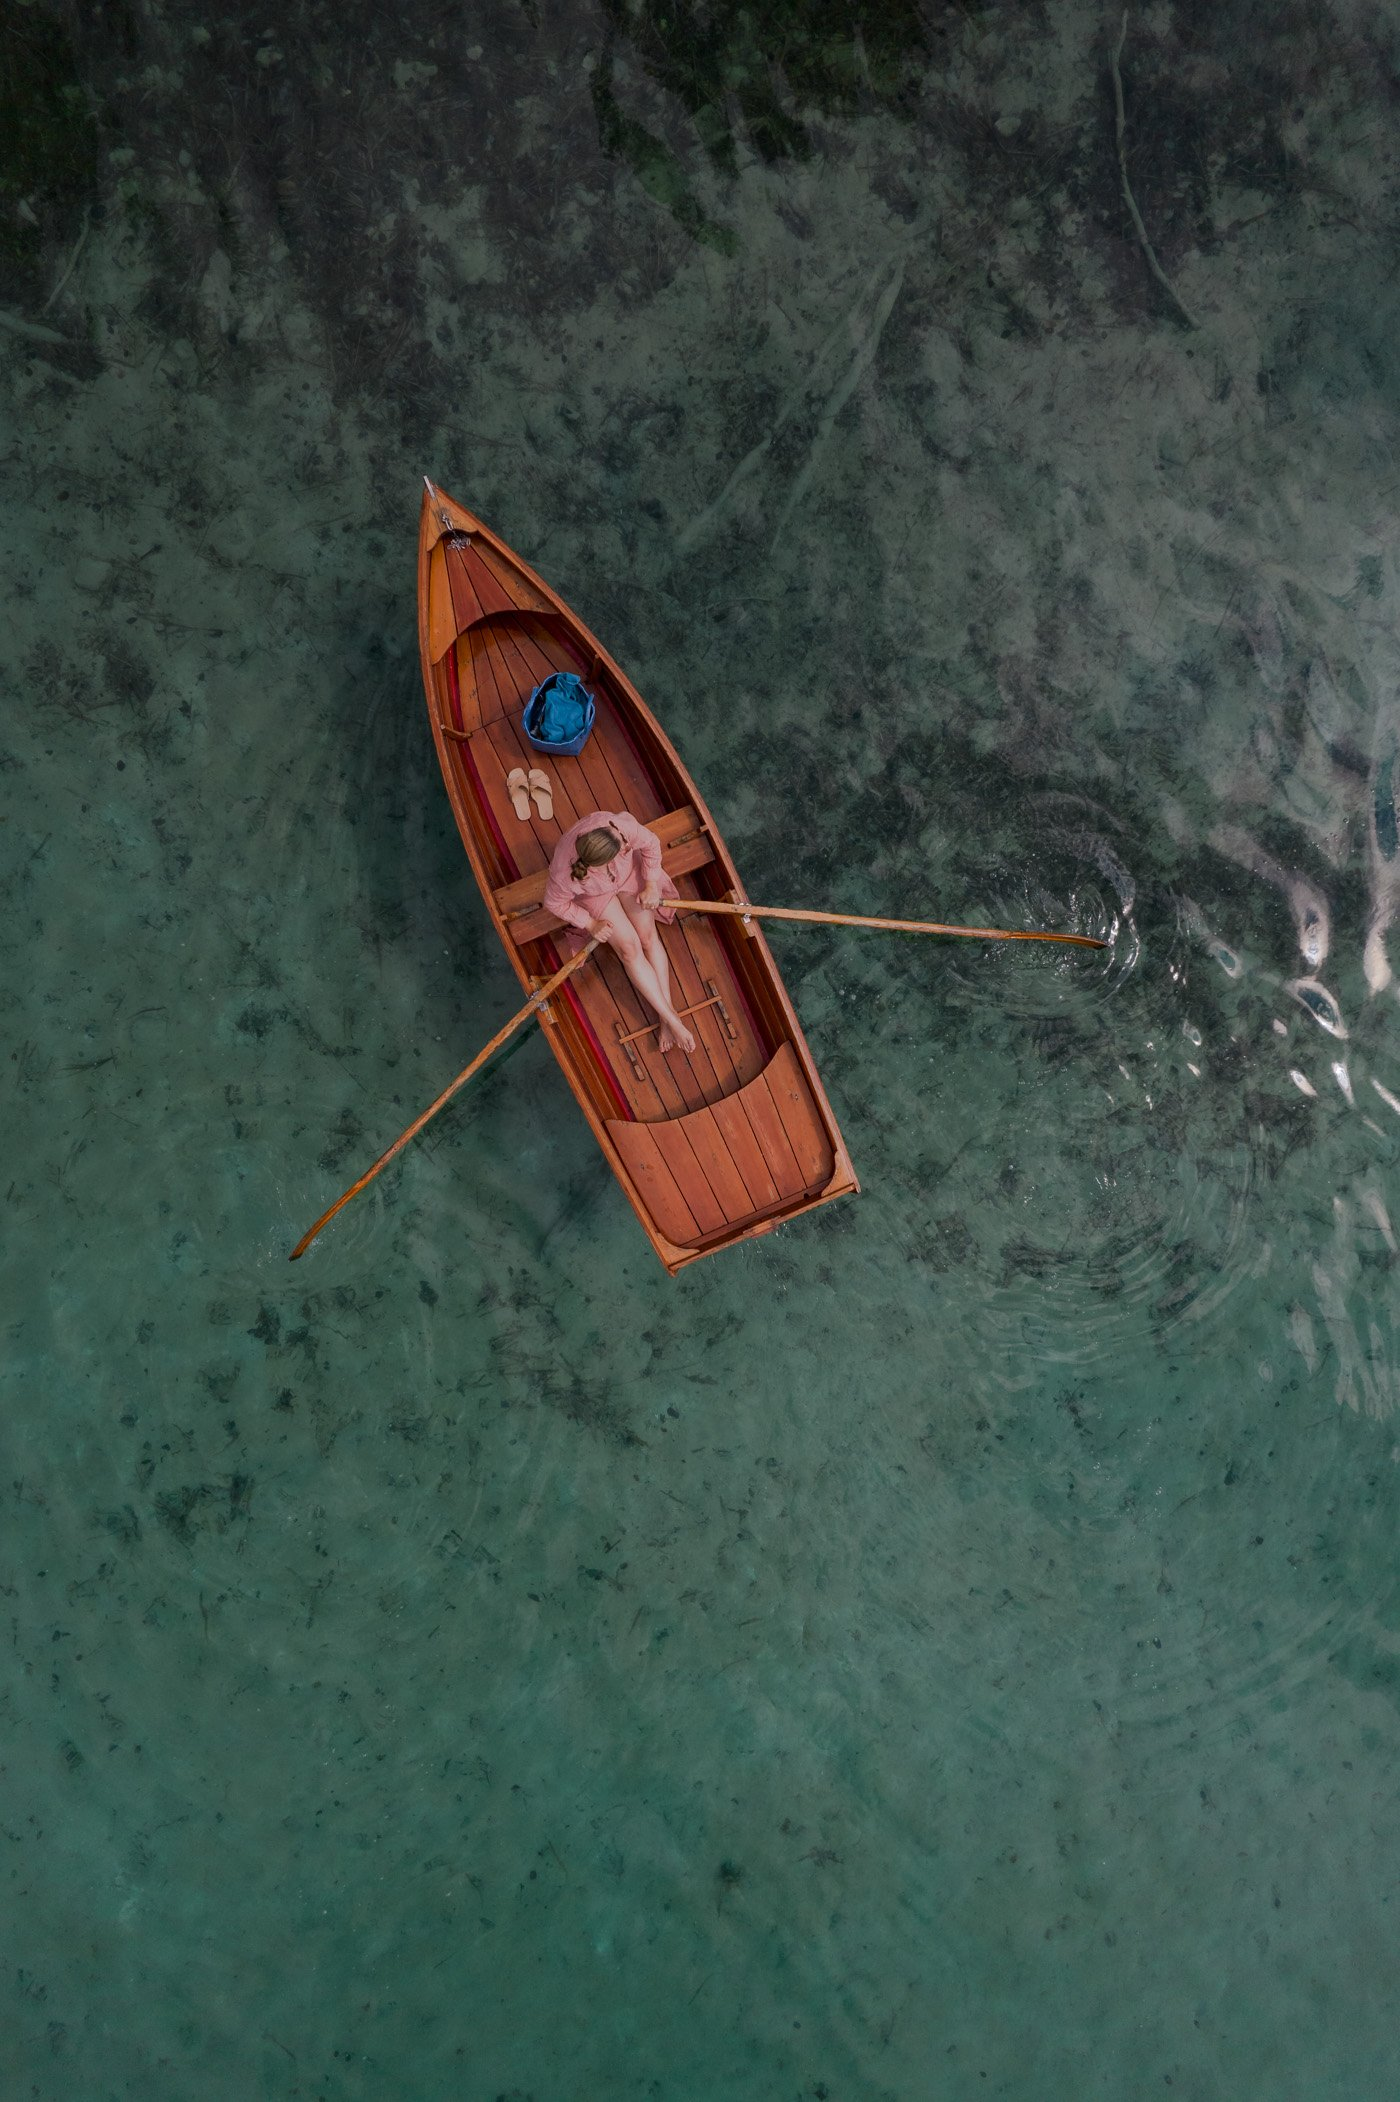 Rent a traditional rowing boat from Strandhotel Weissensee